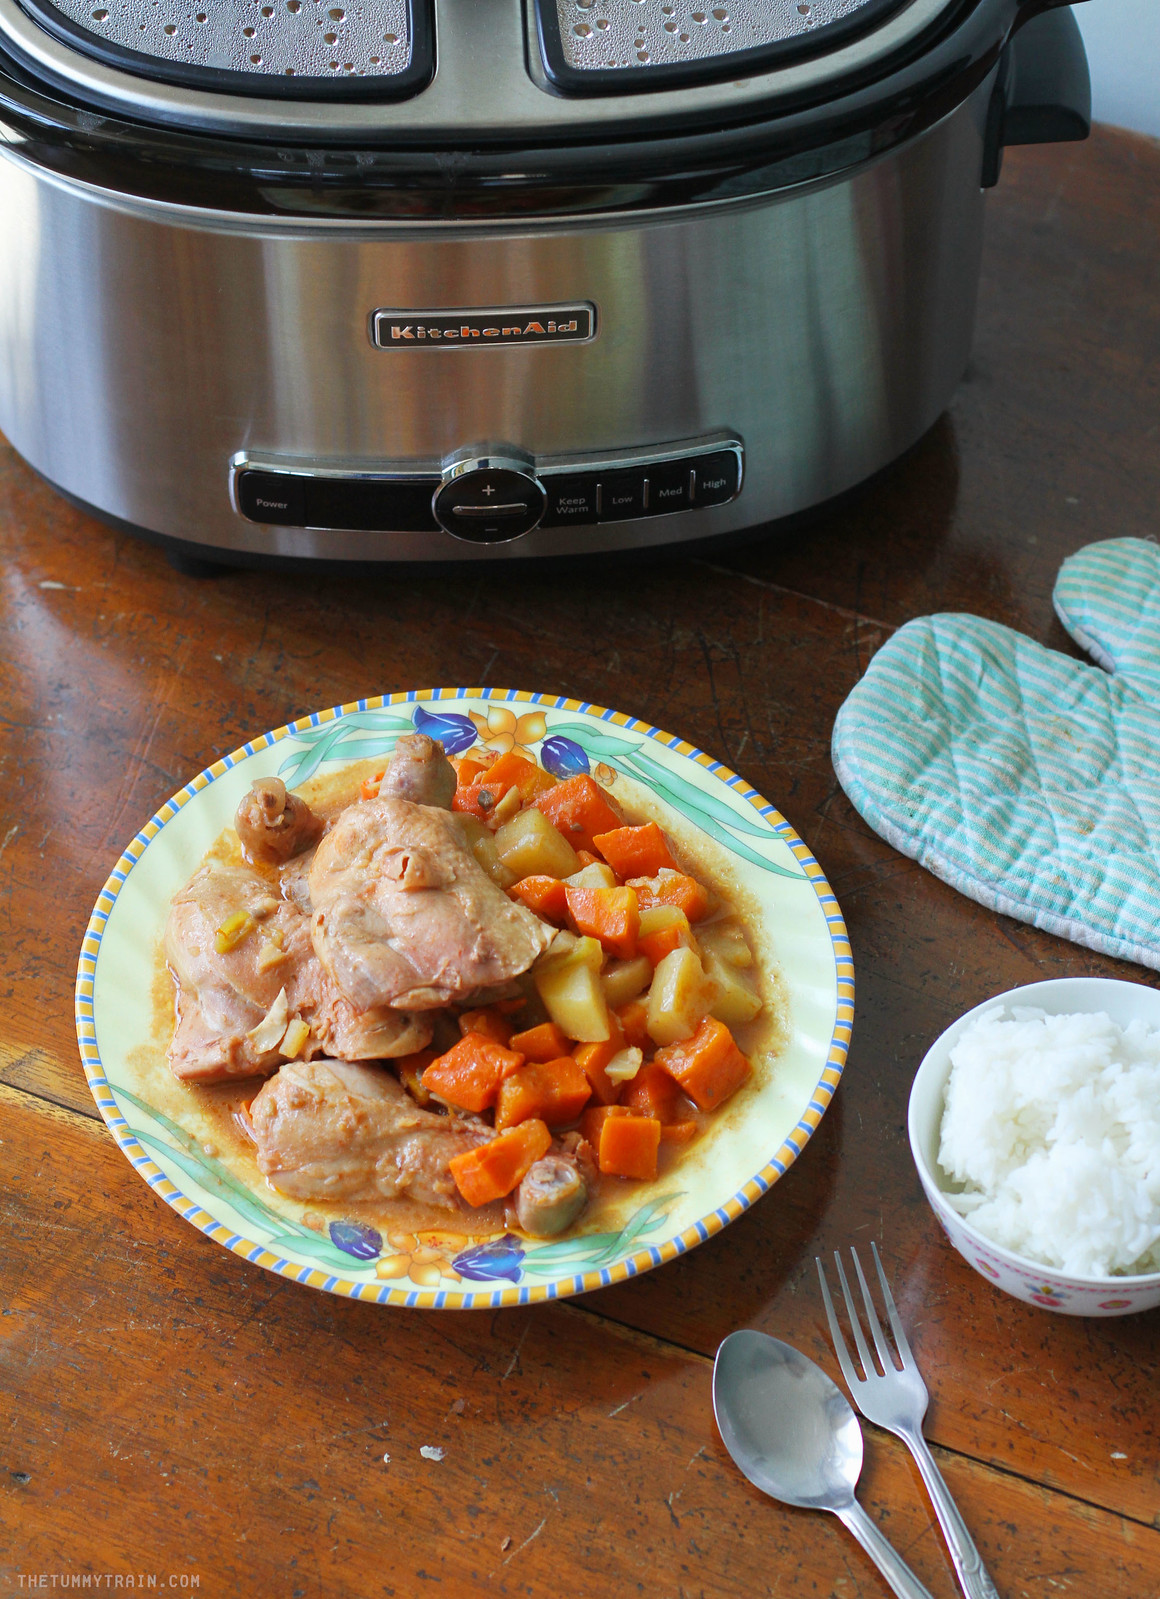 26133779354 2b2ec88385 h - A delightful Slow Cooker Spicy Chicken Stew Recipe with KitchenAid